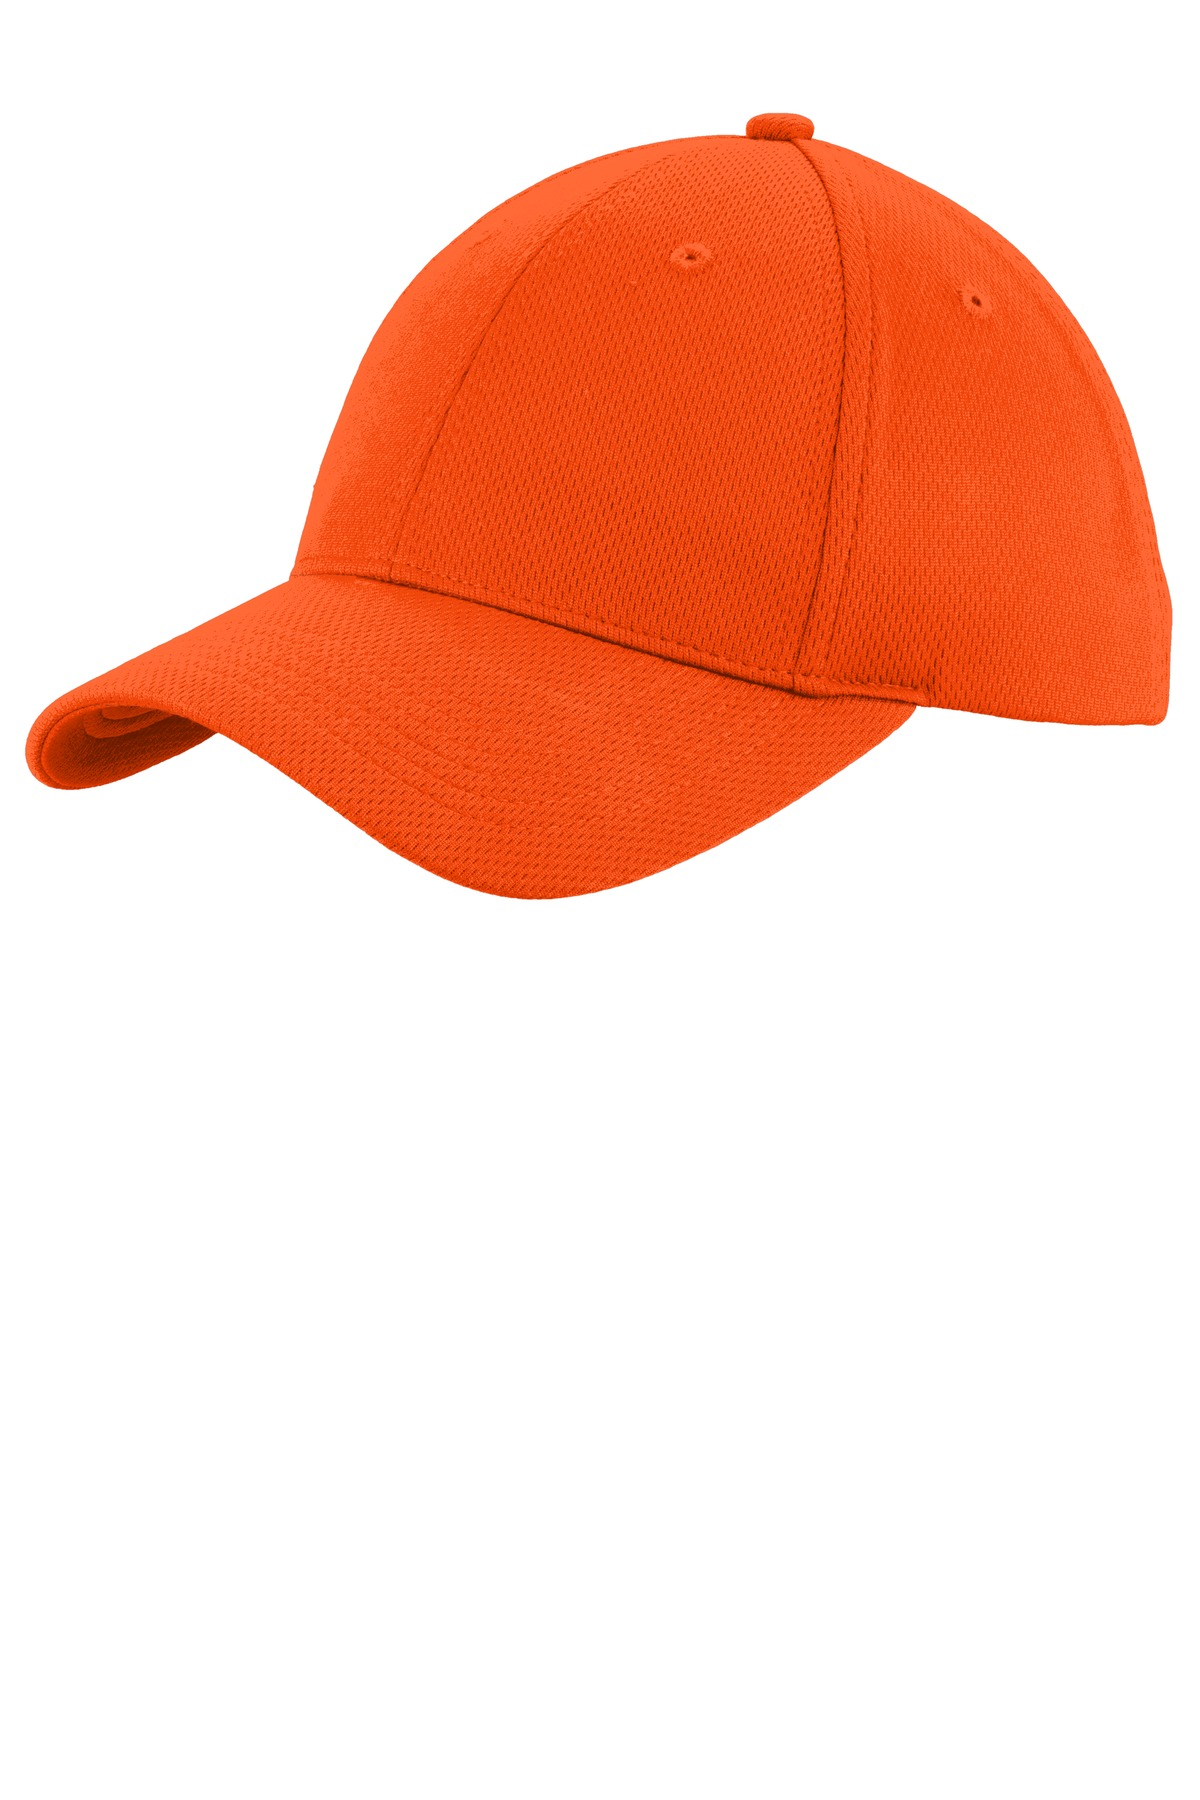 Sport-Tek ®  PosiCharge ®  RacerMesh ®  Cap. STC26 - Neon Orange